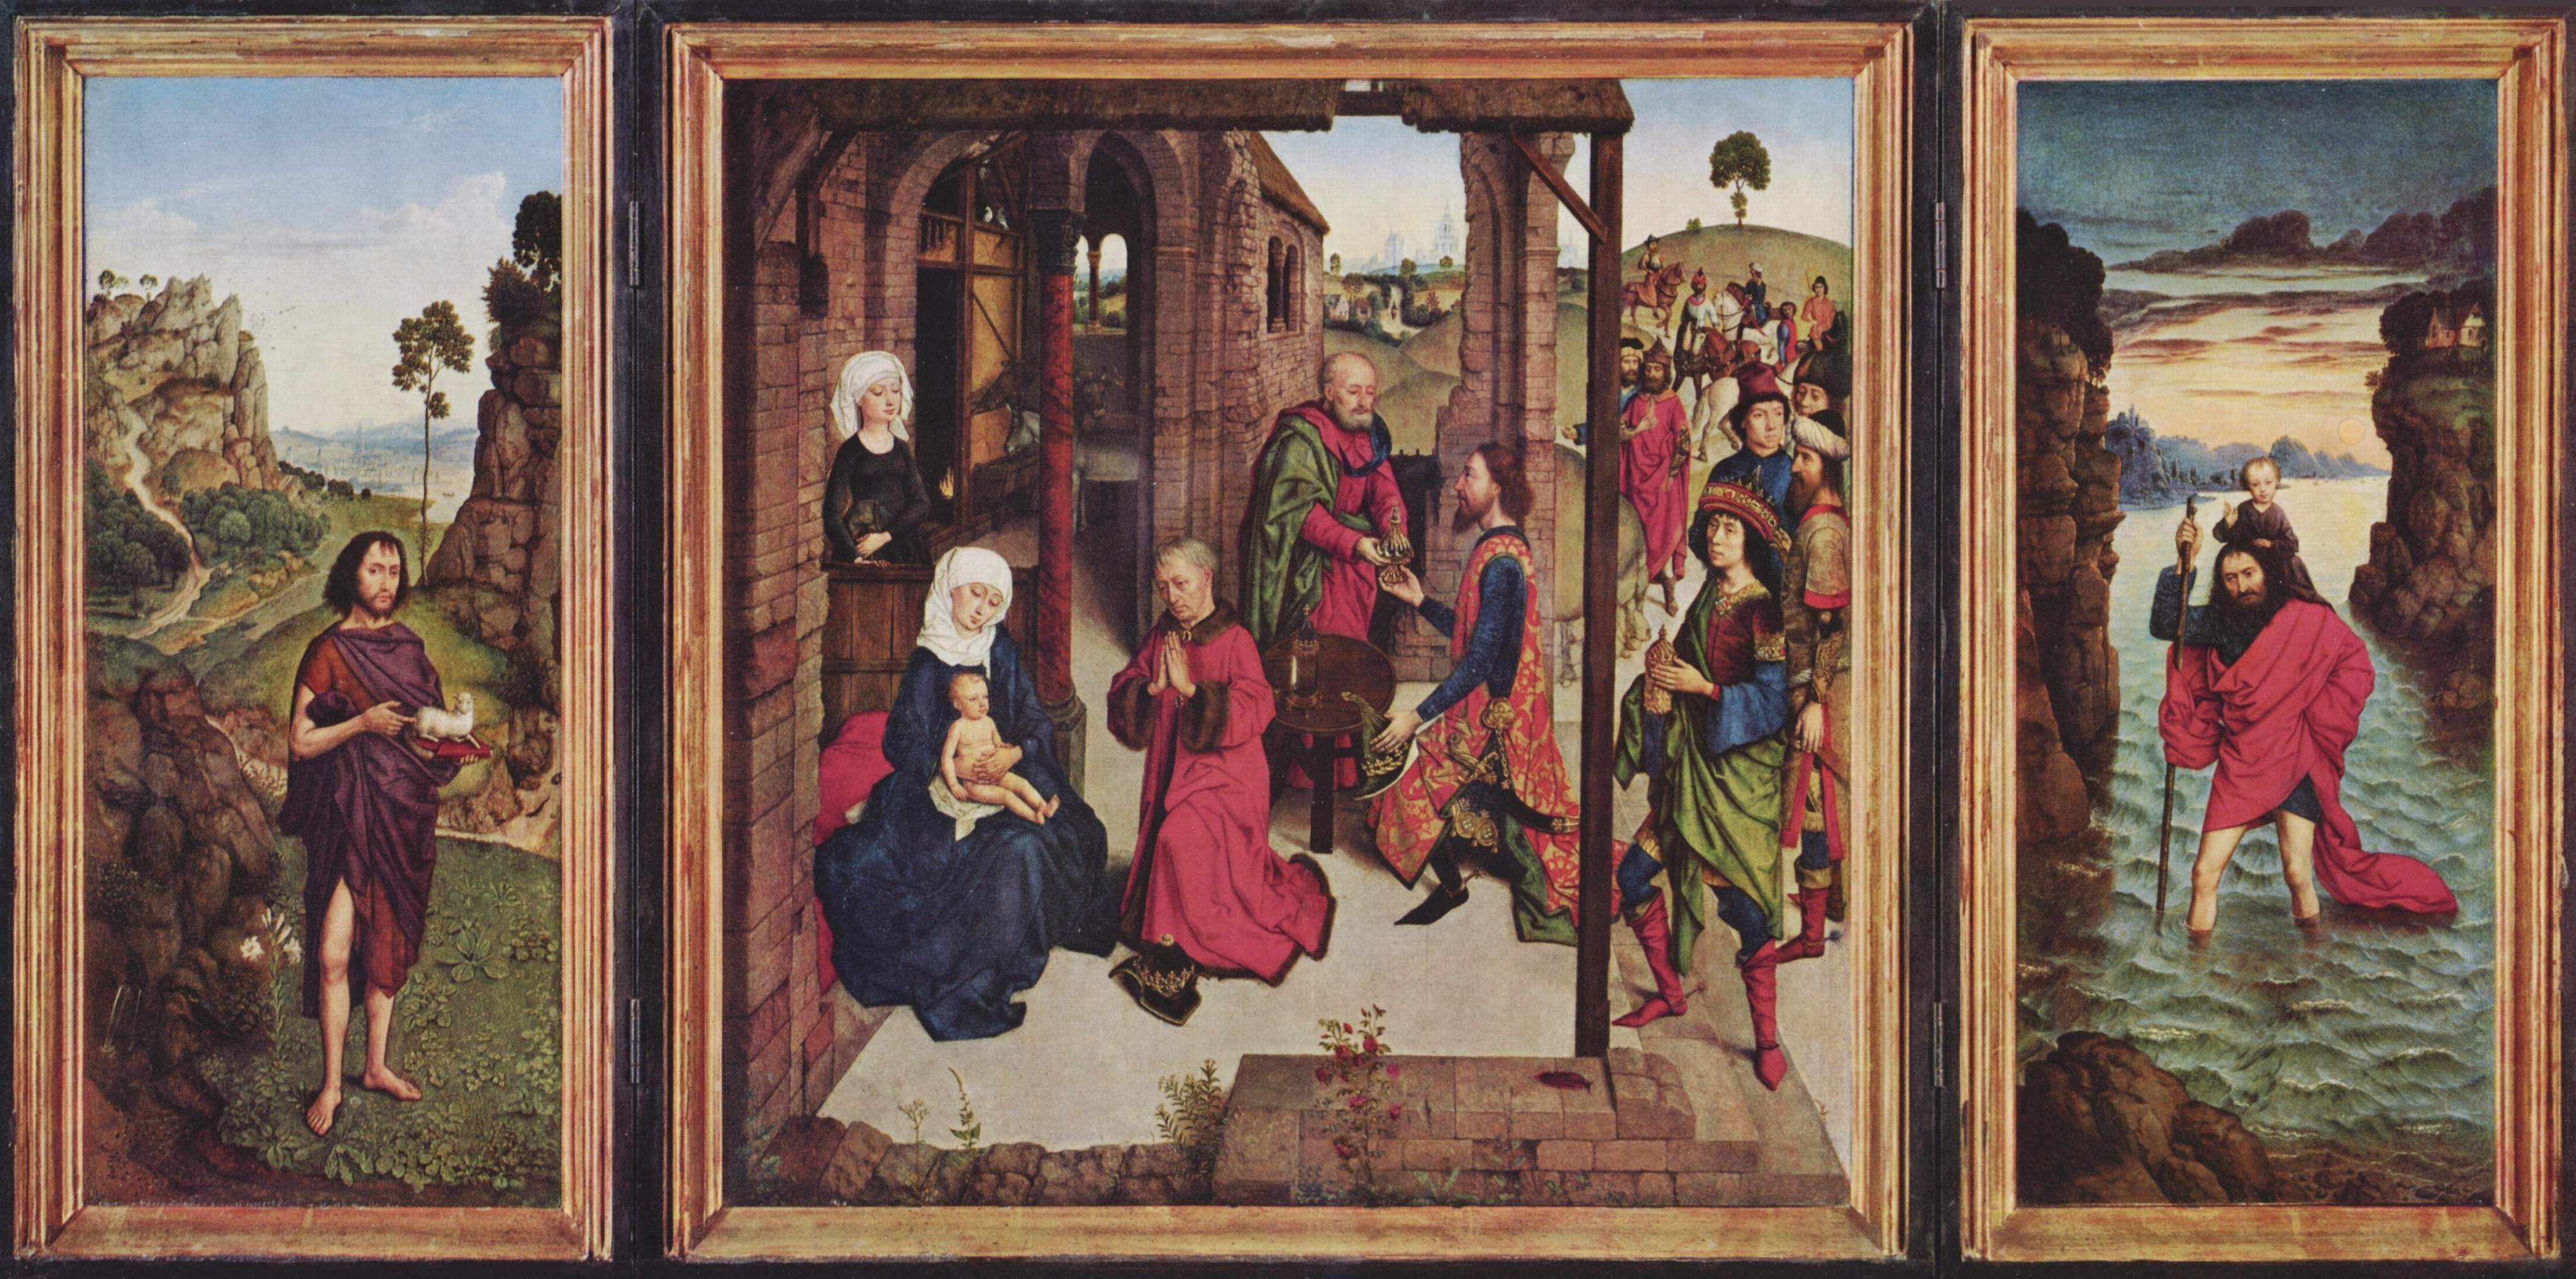 Triptych The Pearl of Brabant. Left wing: St. John the Baptist, middle panel: Adoration of the Magi, right wing: St. Christopher